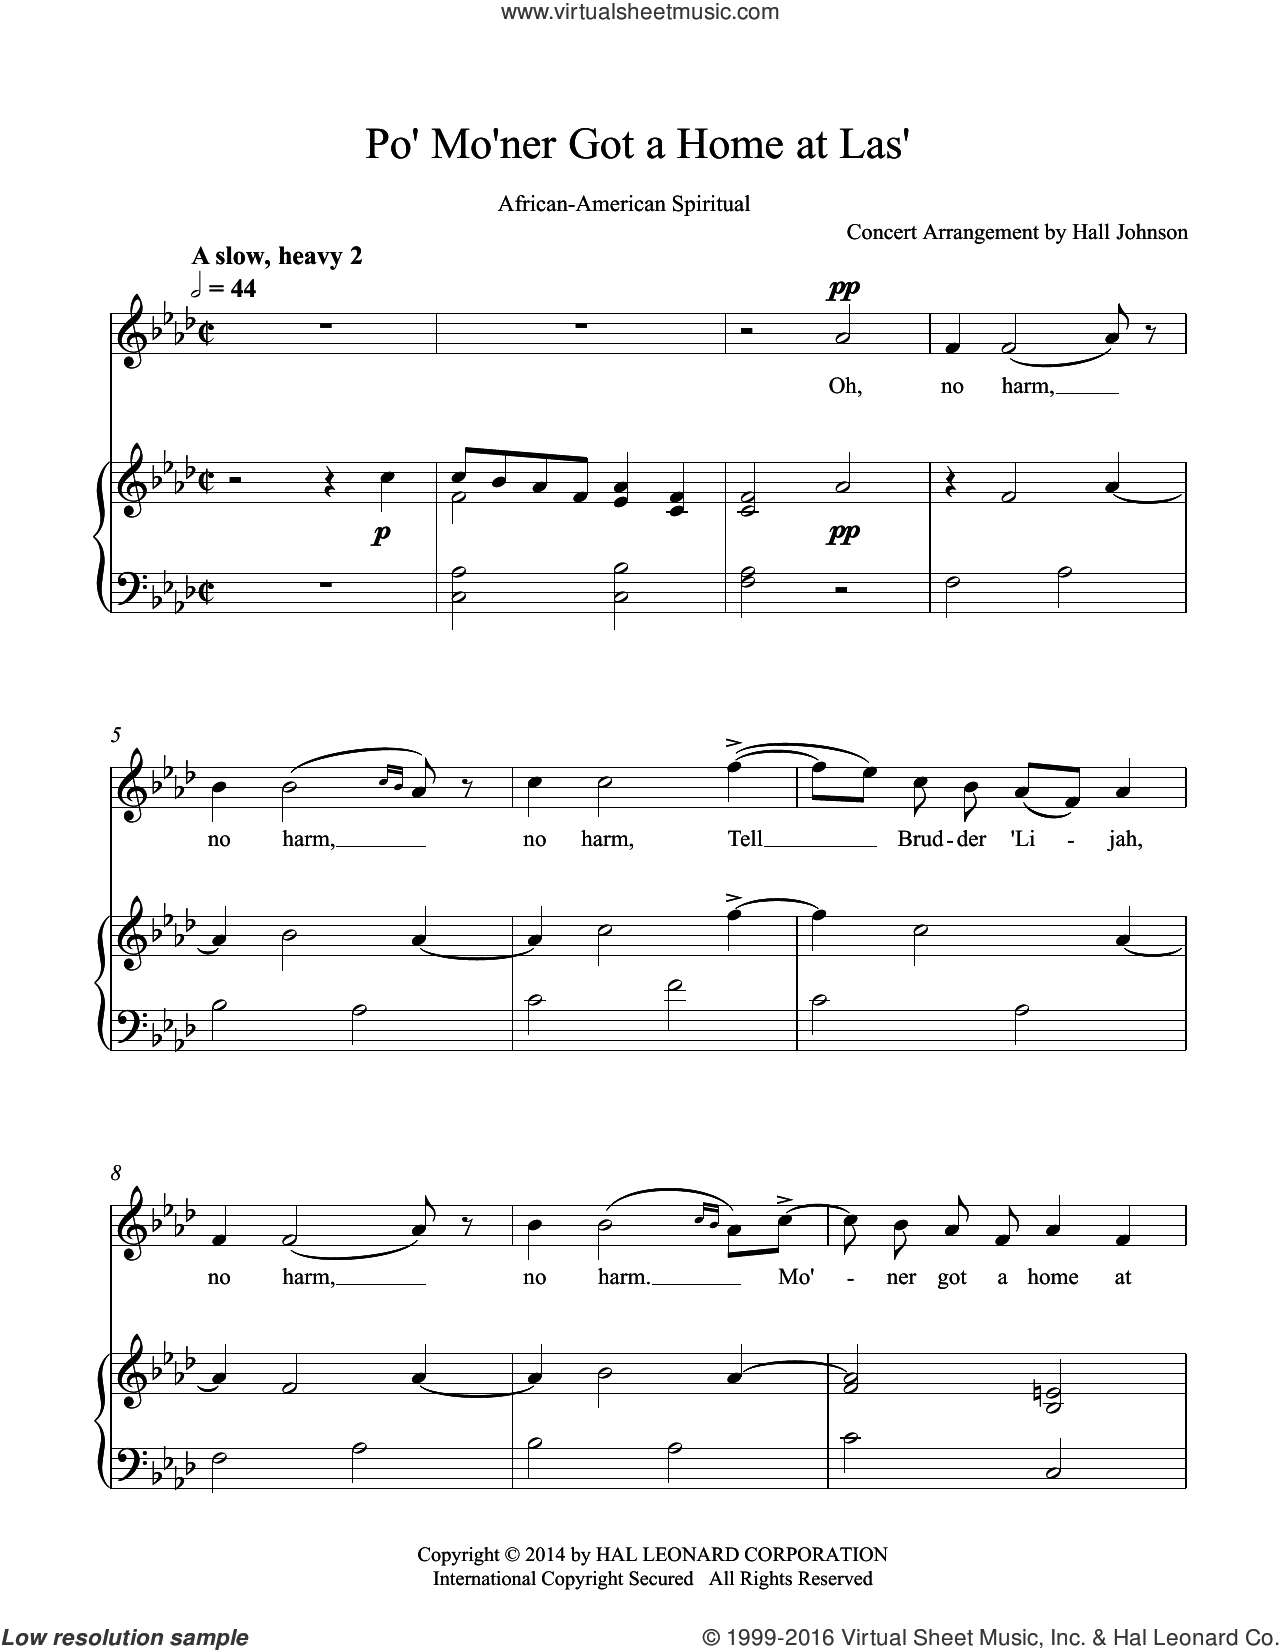 Po' Mo'ner Got a Home at Las' (F minor) sheet music for voice and piano by Hall Johnson, classical score, intermediate skill level